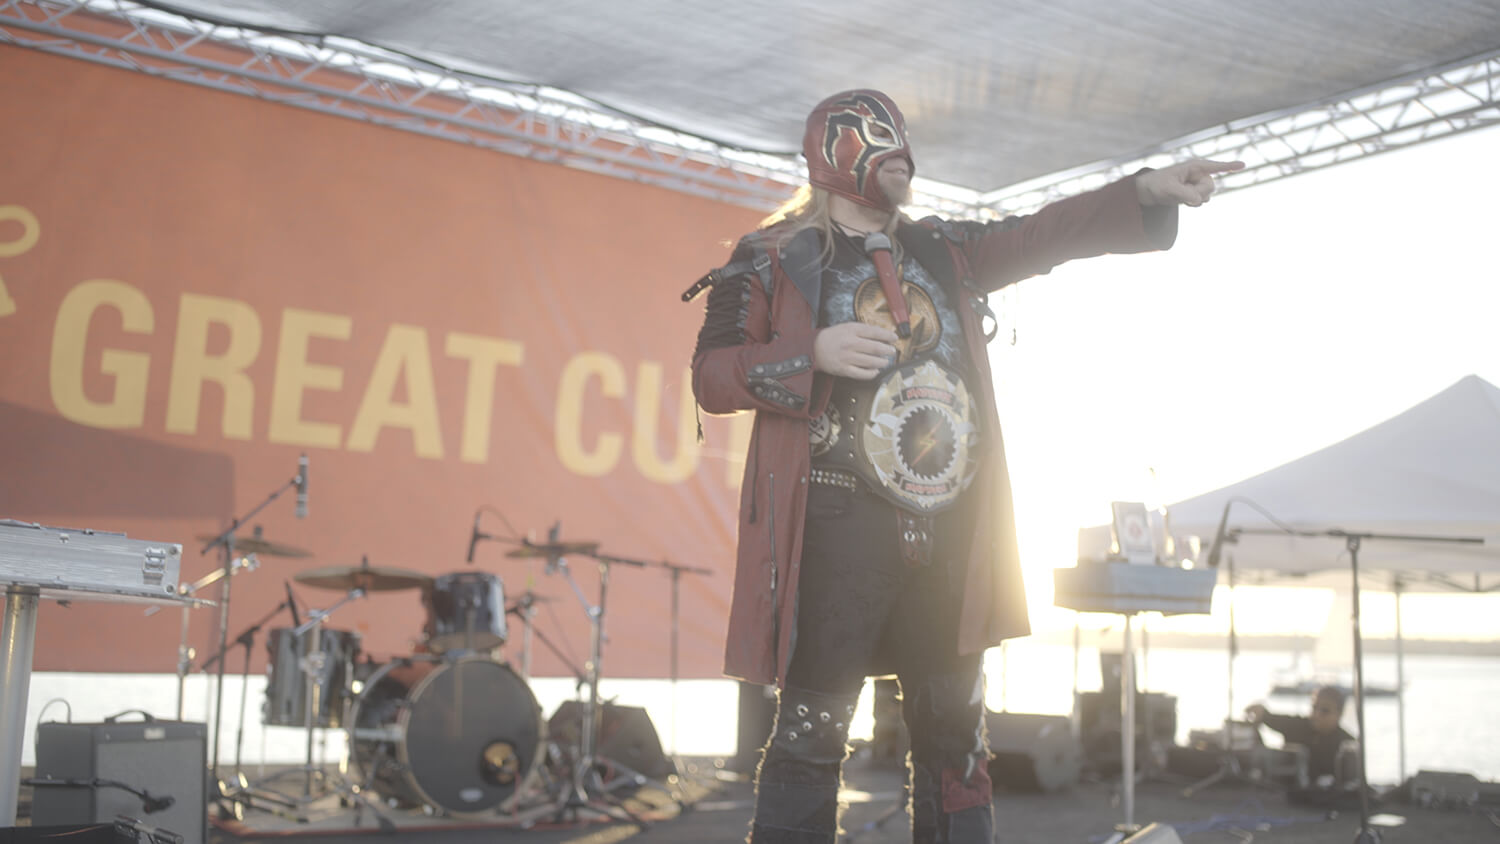 The Shocker with his championship belt at The Great Cut